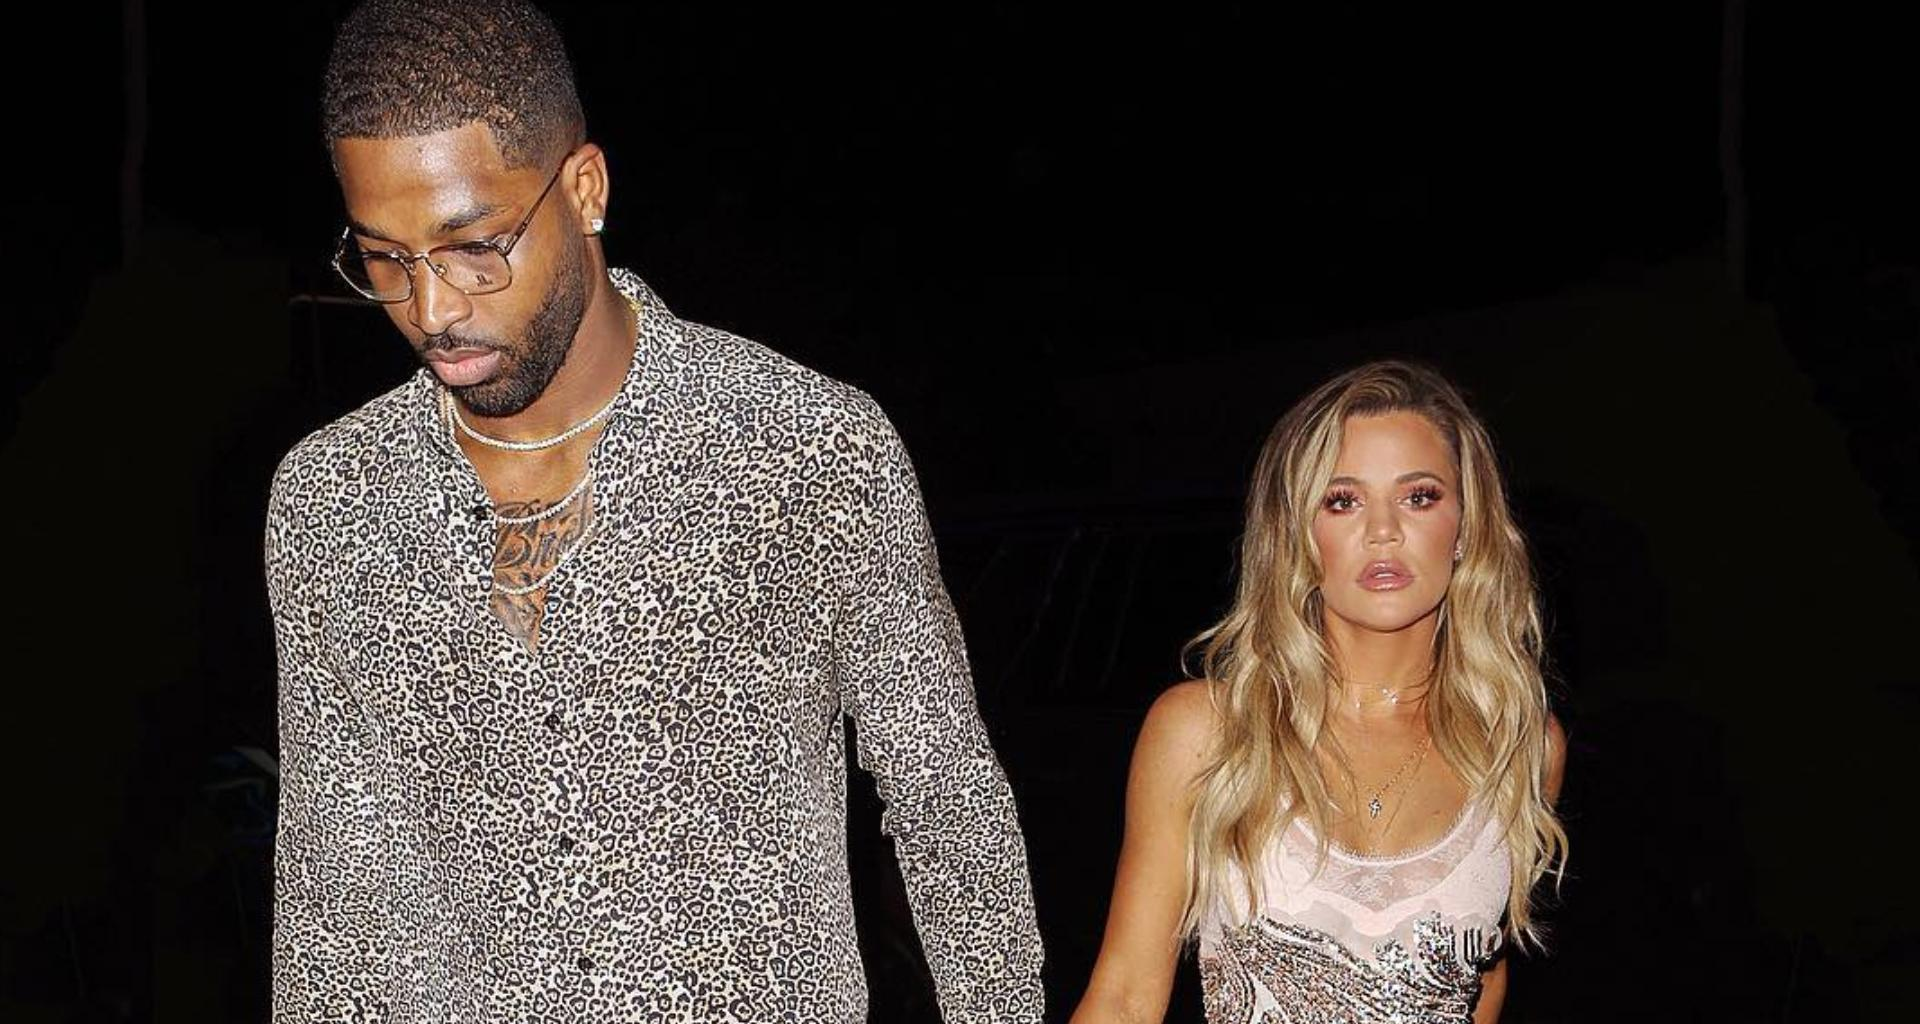 Khloe Kardashian And Tristan Thompson Send Cease And Desist To Woman Who Claims Tristan Is Her Baby's Daddy